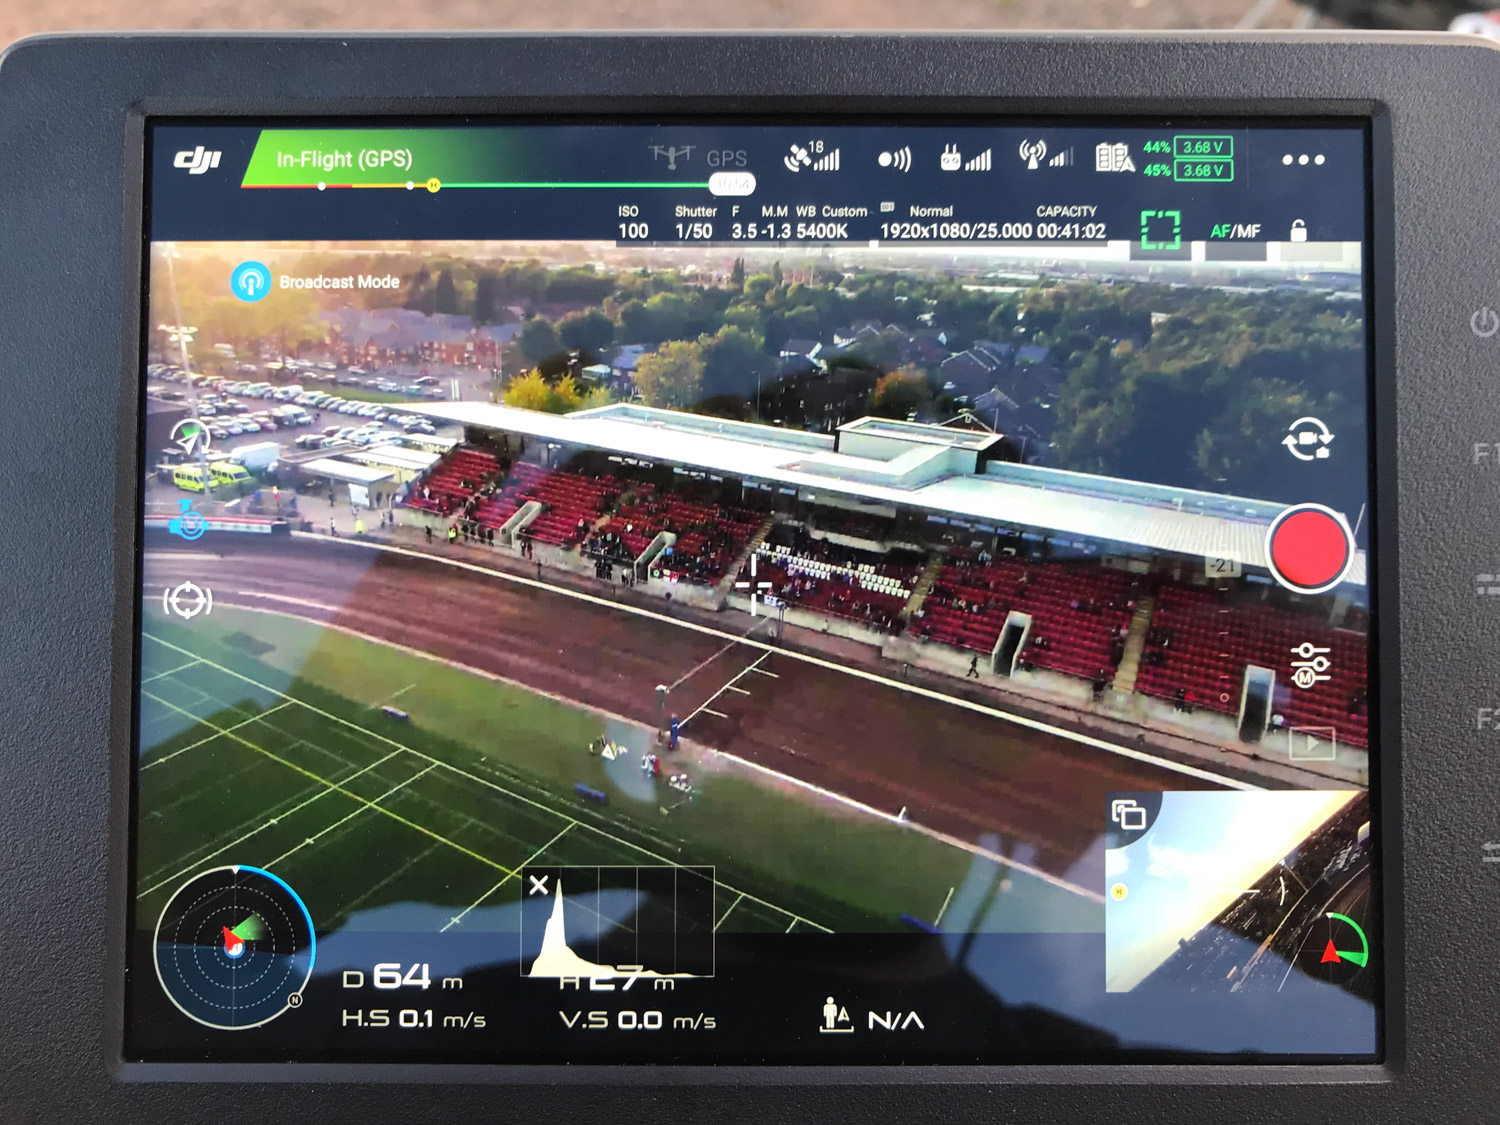 drone_filming_aerial_imagery_north_wales_speedway-1.jpg